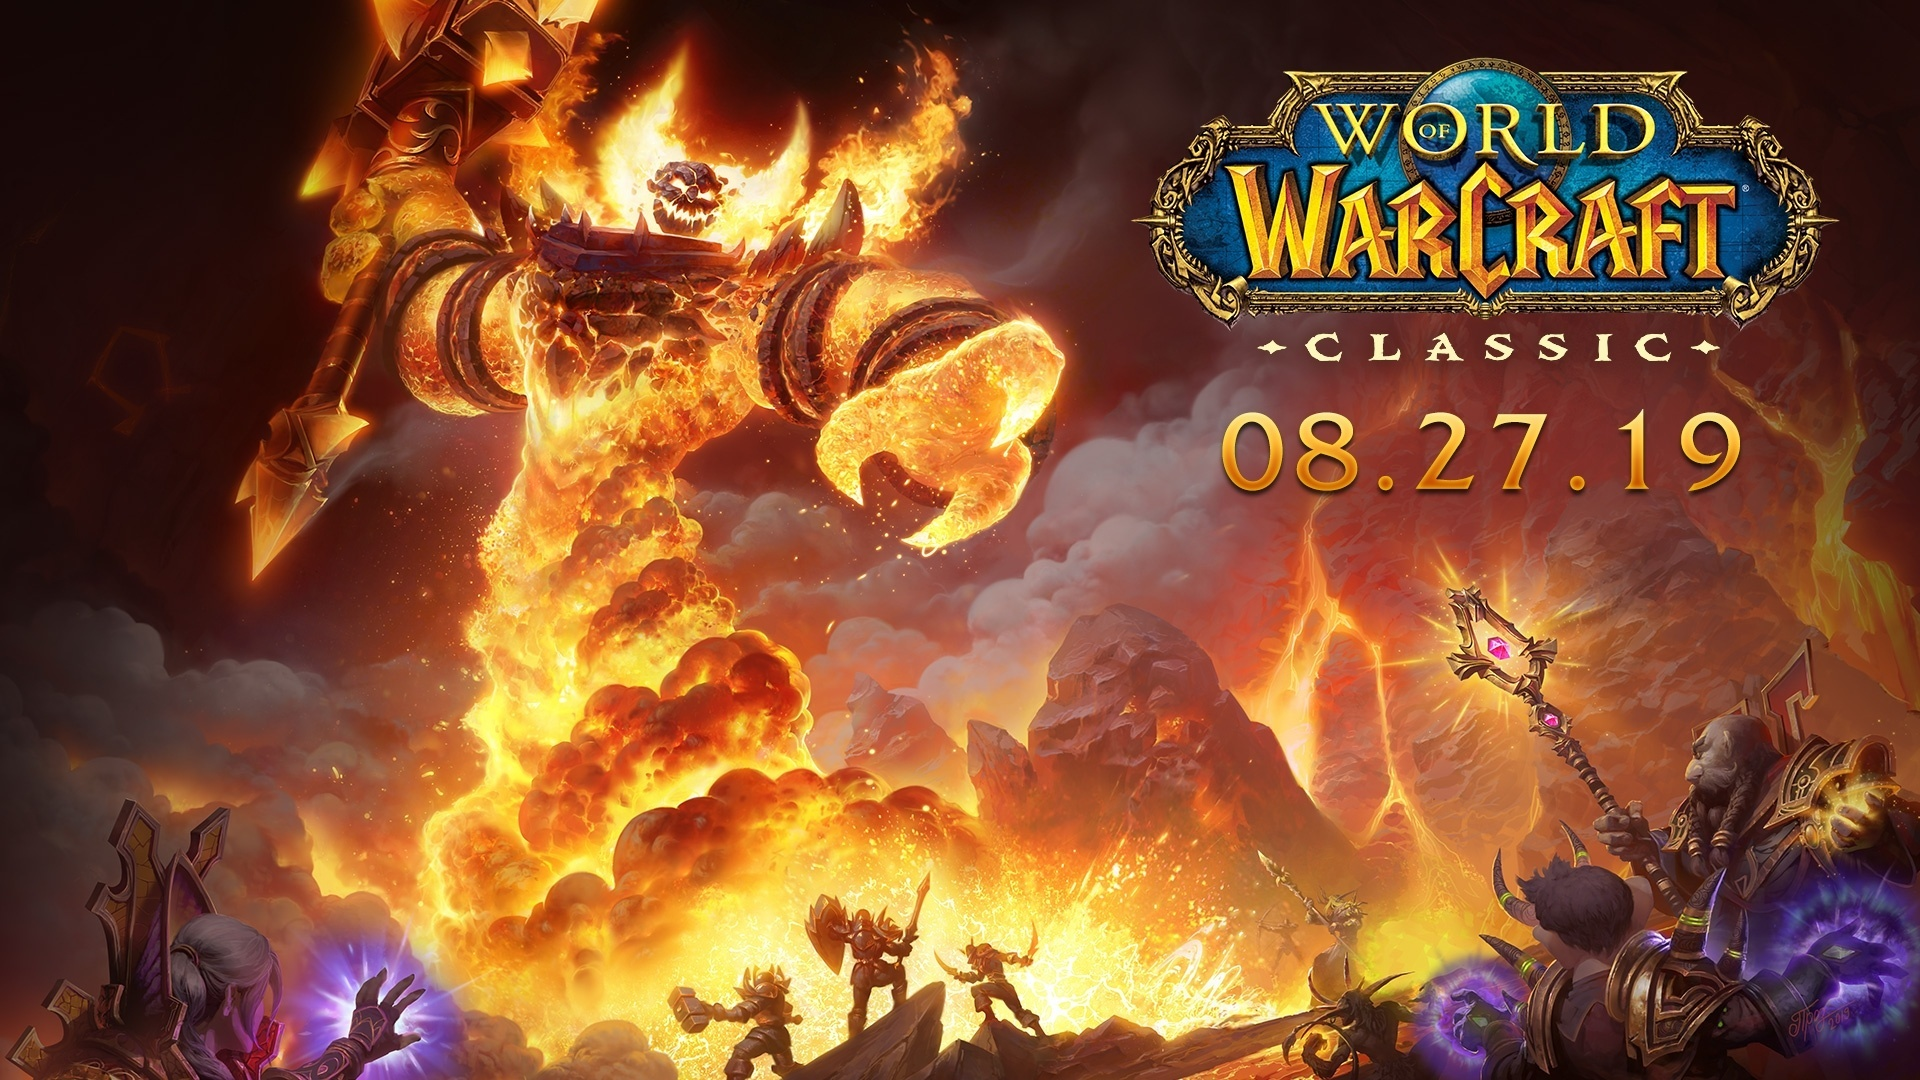 Classic WoW - Liveblog of the Classic WoW Dev Team AMA on /r